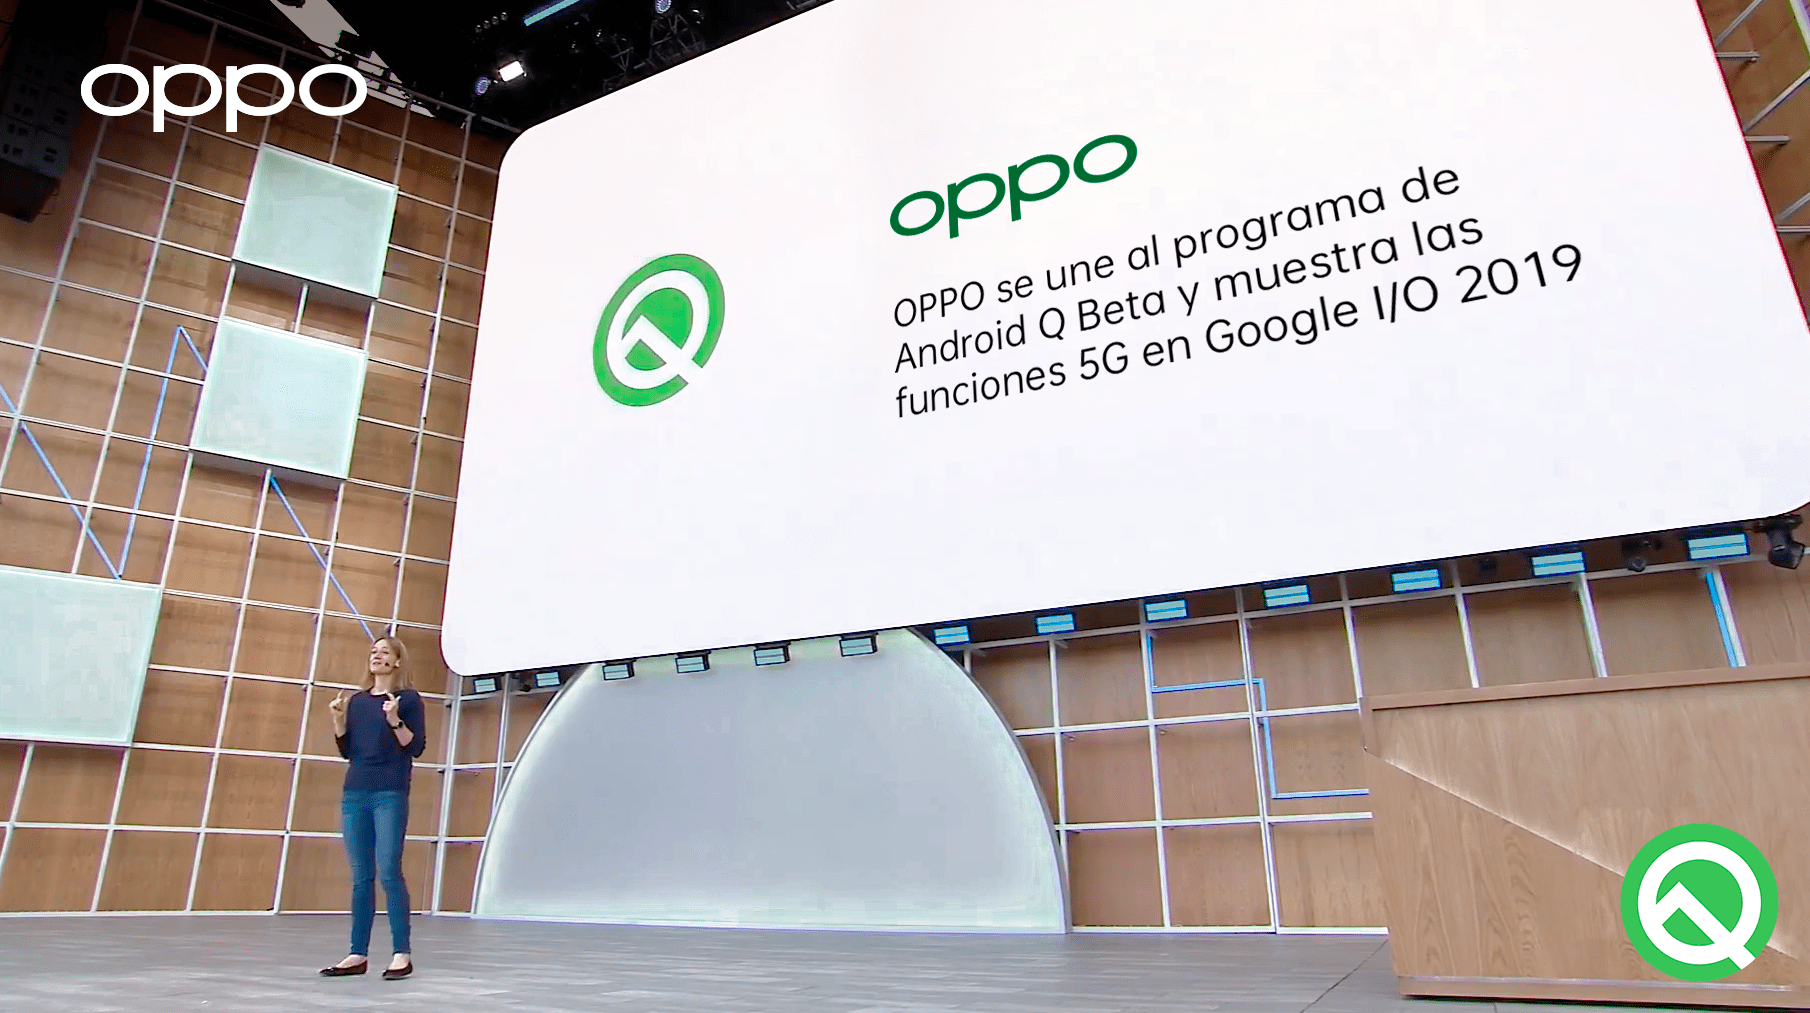 OPPO Android Q Beta